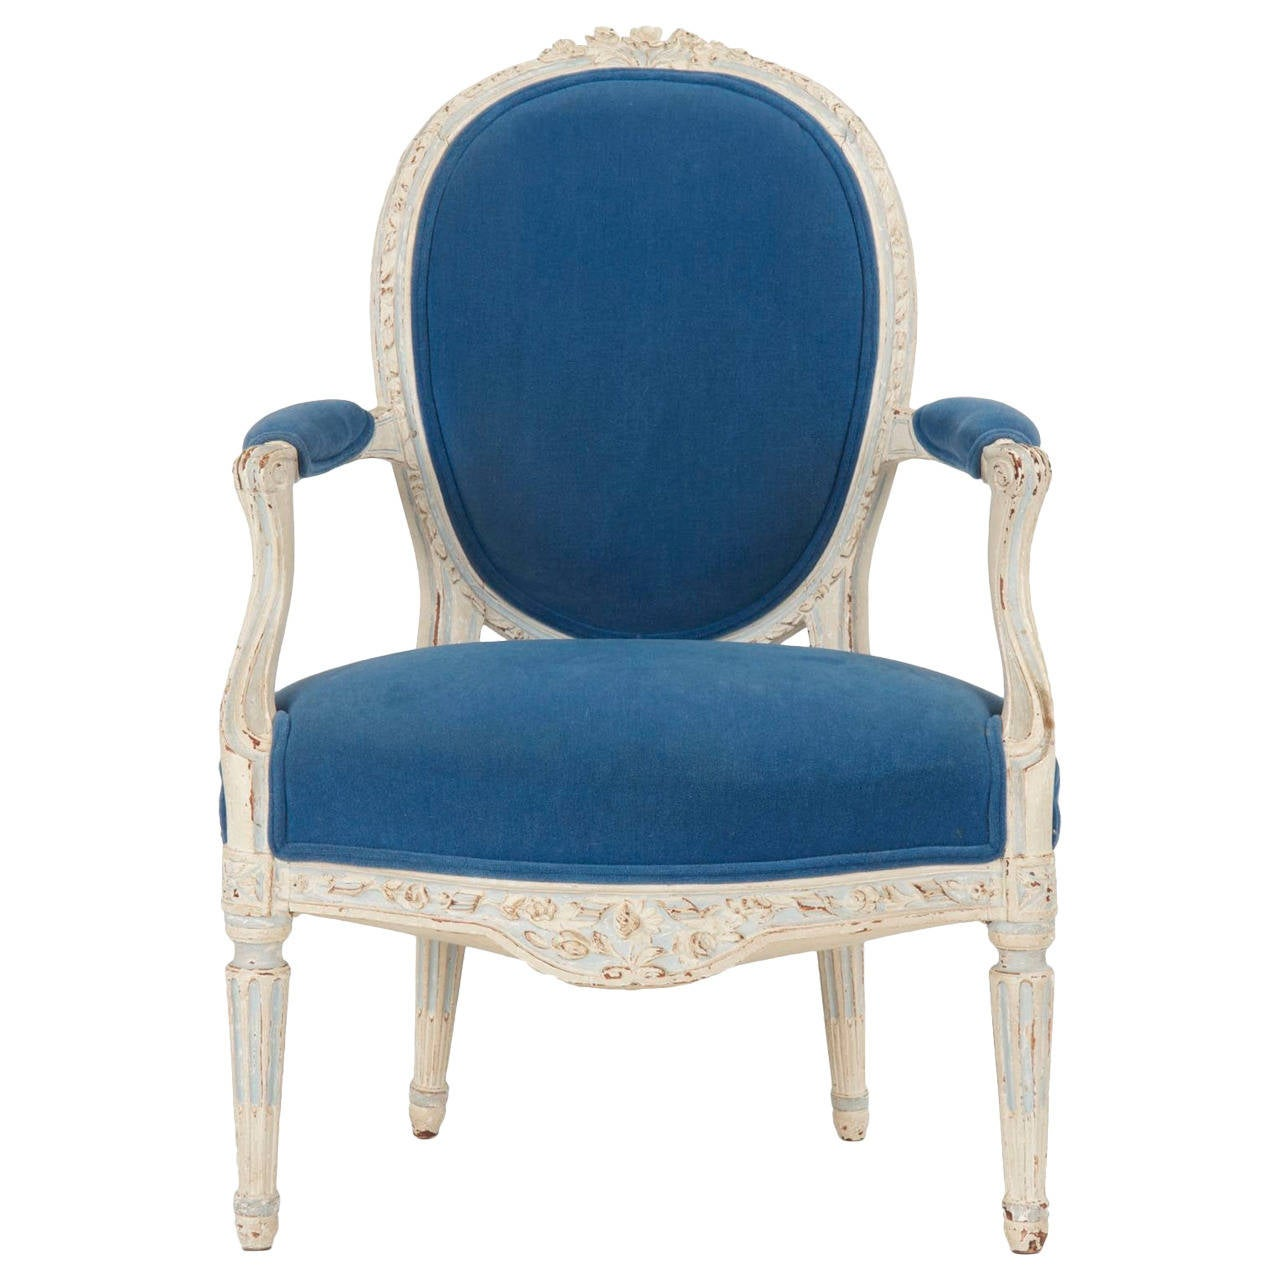 french louis xvi painted antique fauteuil late 18th century at 1stdibs. Black Bedroom Furniture Sets. Home Design Ideas